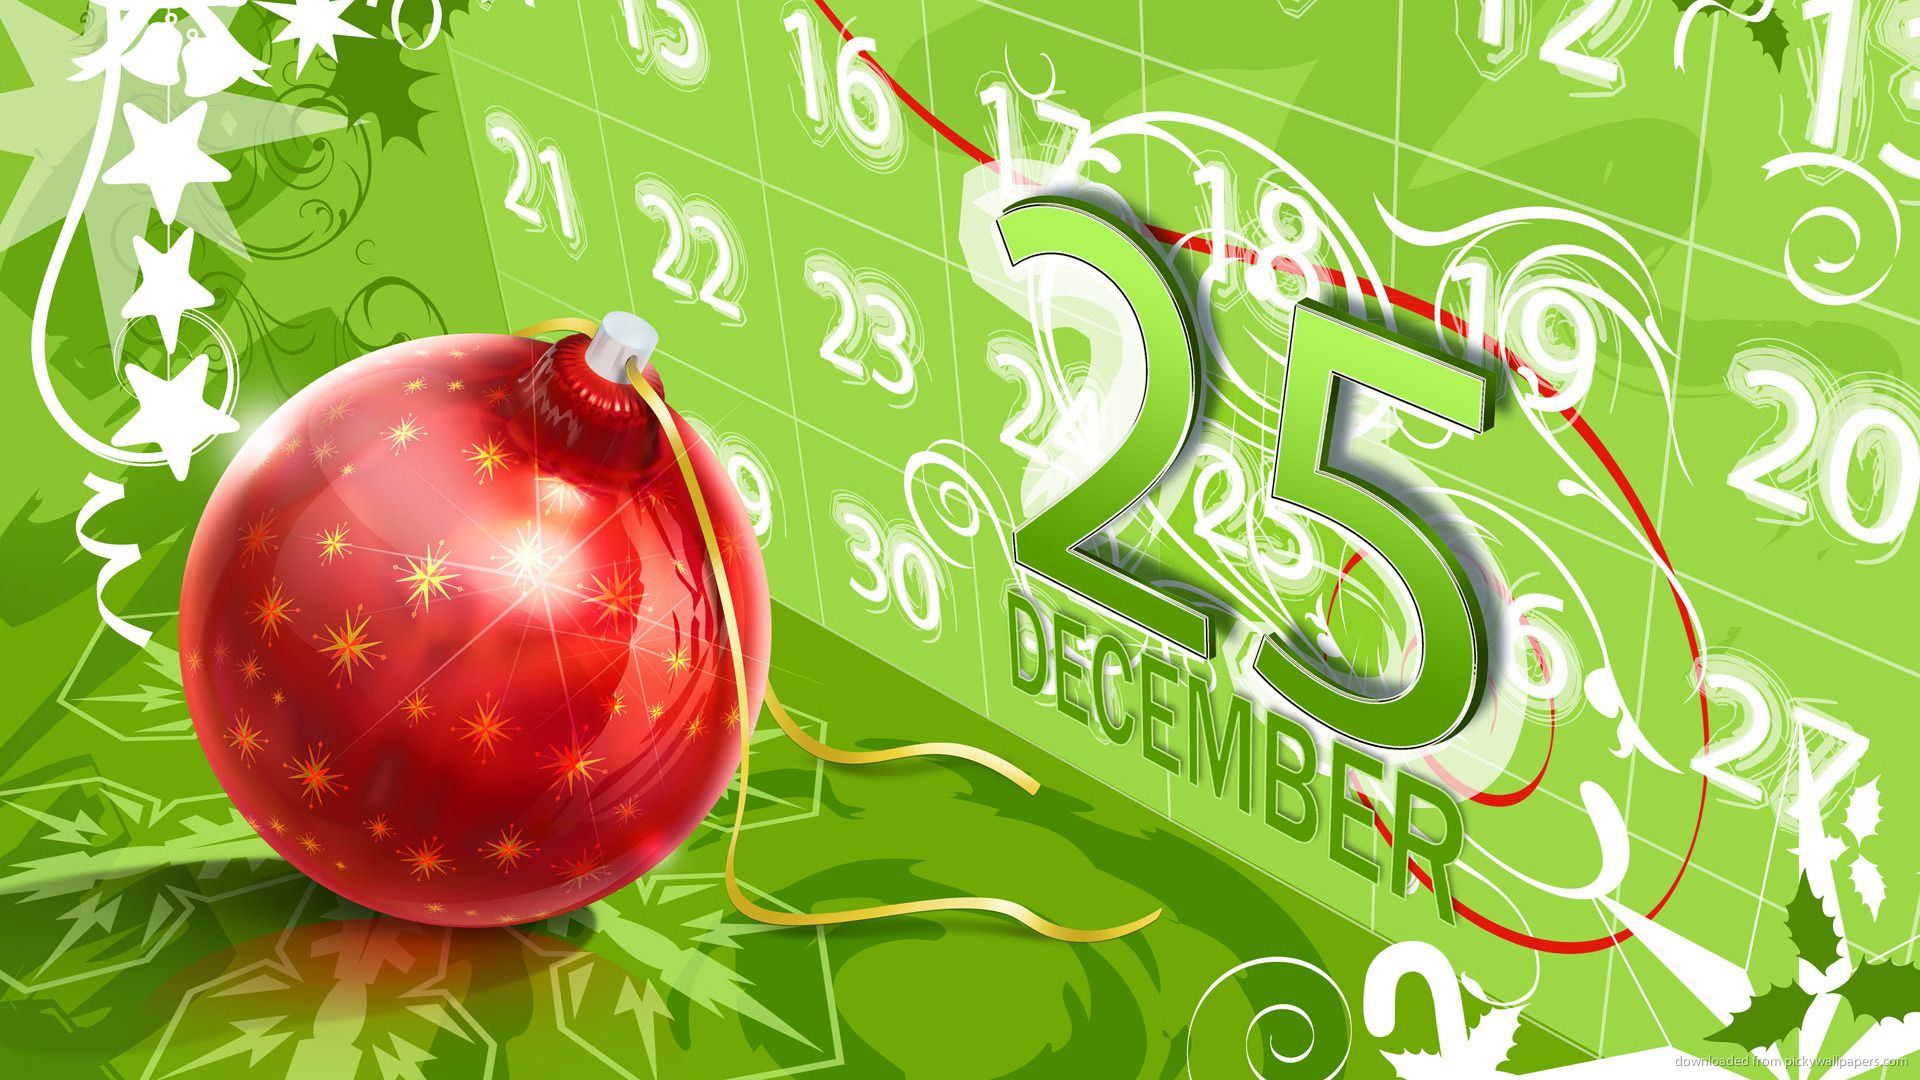 Christmas 25 December Green Picture Christmas Wallpaper Free Christmas Wallpaper Christmas Wallpaper Backgrounds